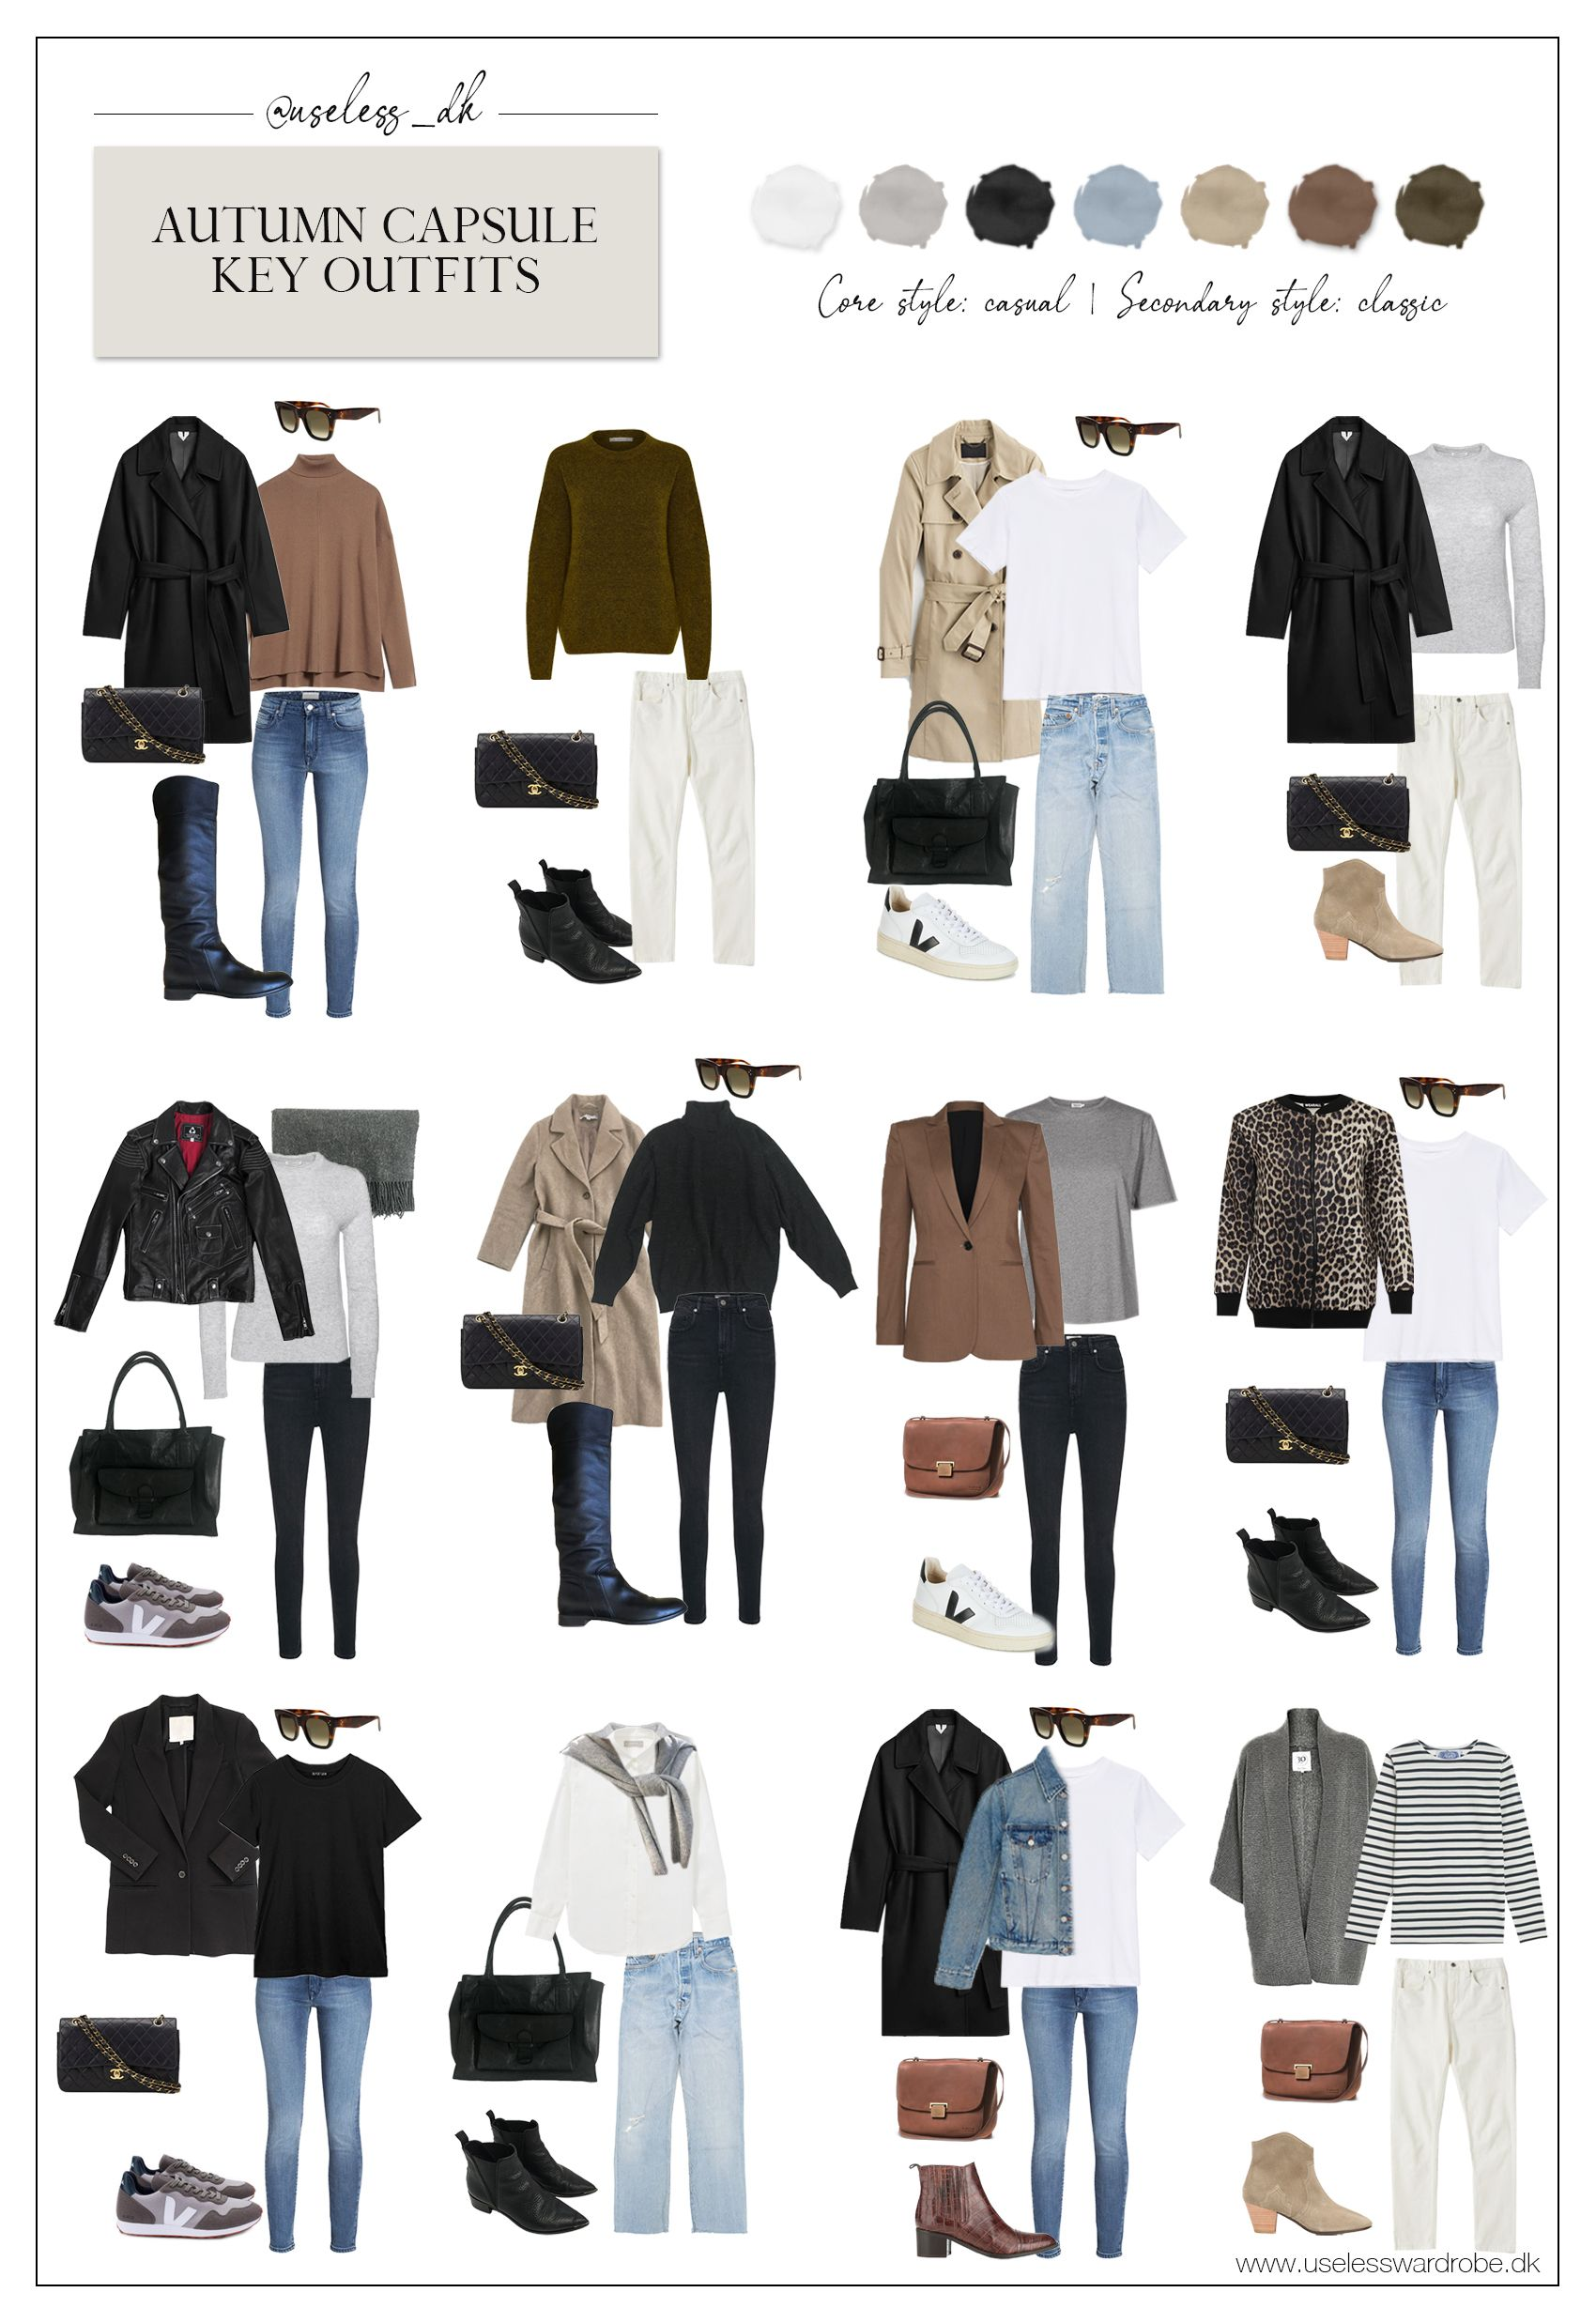 Key outfits for autumn